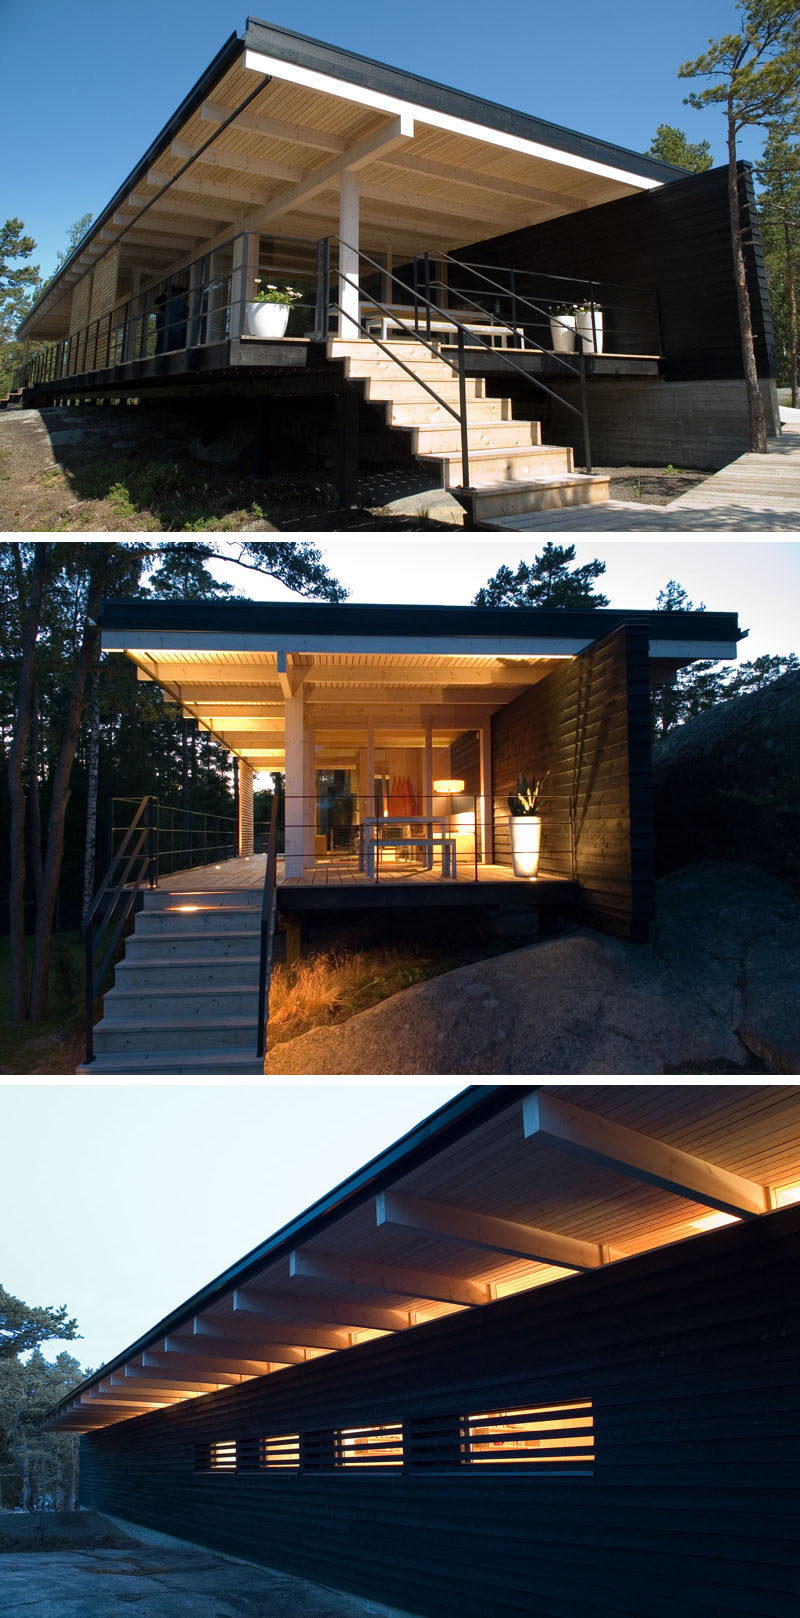 This year-round cottage is constructed from prefabricated parts made of Finnish timber and are framed according to a modular system. One side of the cottage is open to the view, while the back wall is stained black.